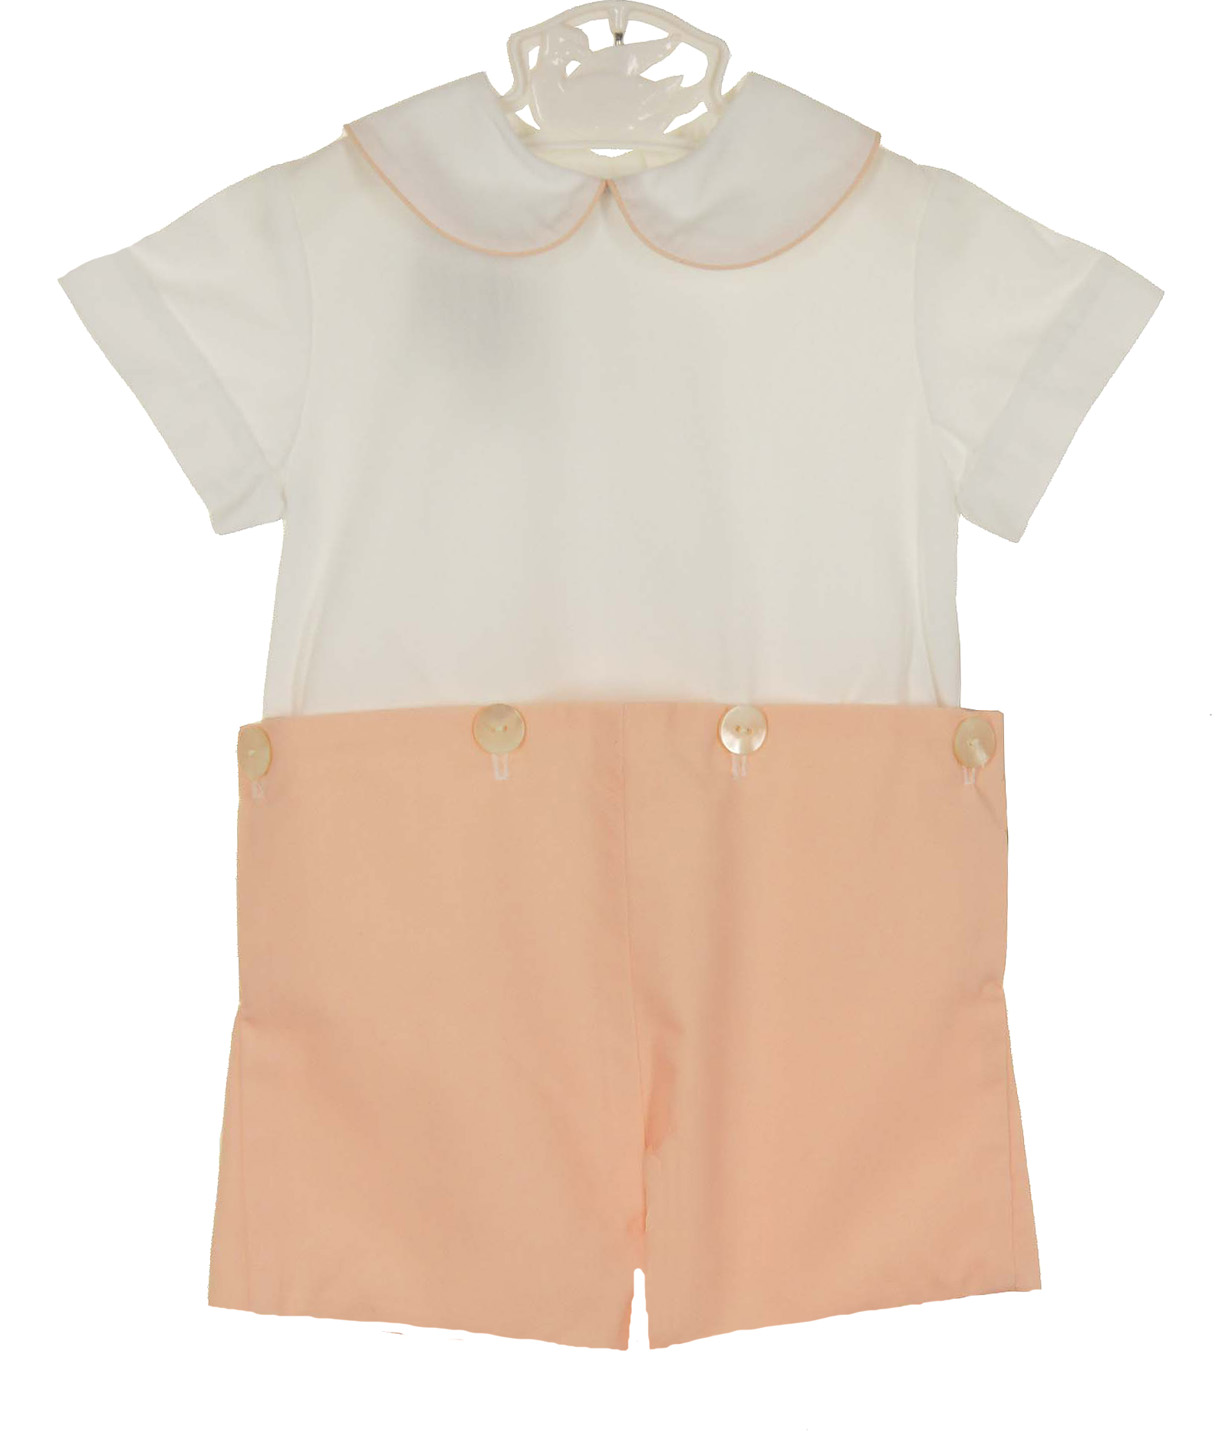 5deec45df0339 Victorian Heirlooms apricot and white toddler shorts set,peach and ...